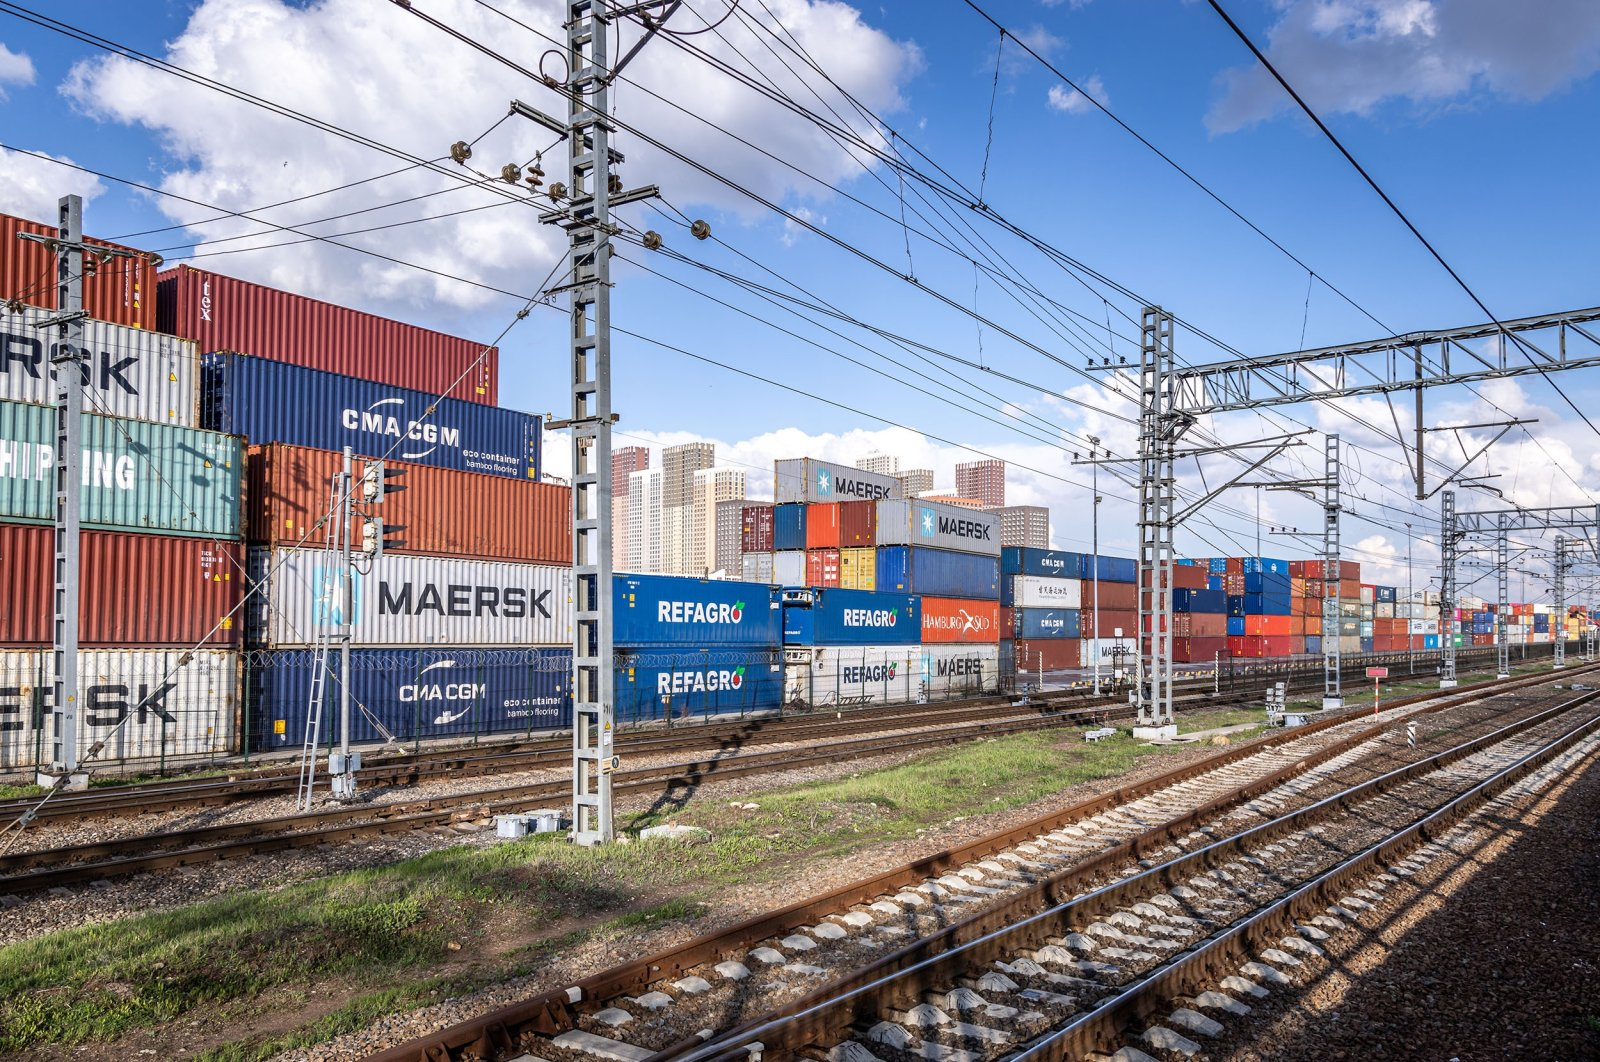 Cargo containers seen in a railway terminal in Moscow, Russia, May 3, 2021. (Shutterstock Photo)